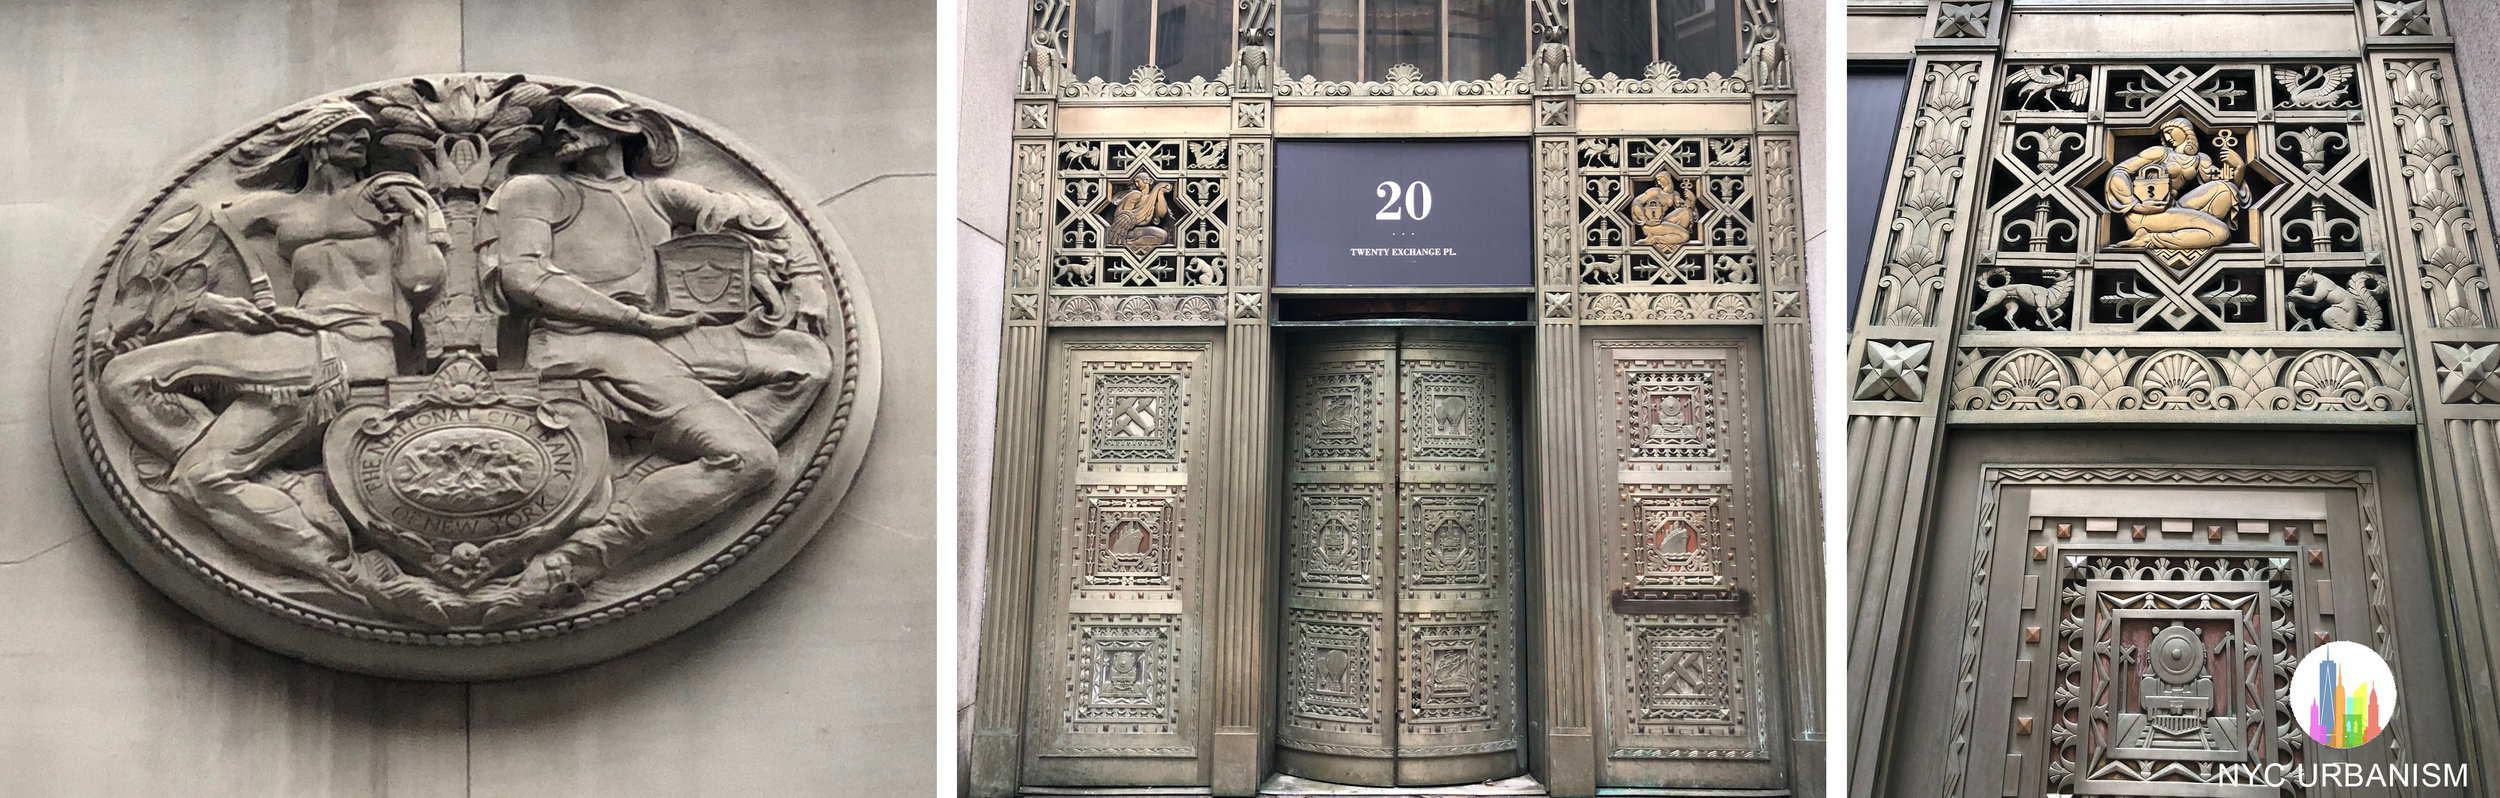 Left: National City Bank of New York logo above the entrance. There is also a seal for Farmers Trust and Loan. Middle: entrance to the original branch and senior offices. The Rotunda is on the other side of this entrance. Right: entrance detail.